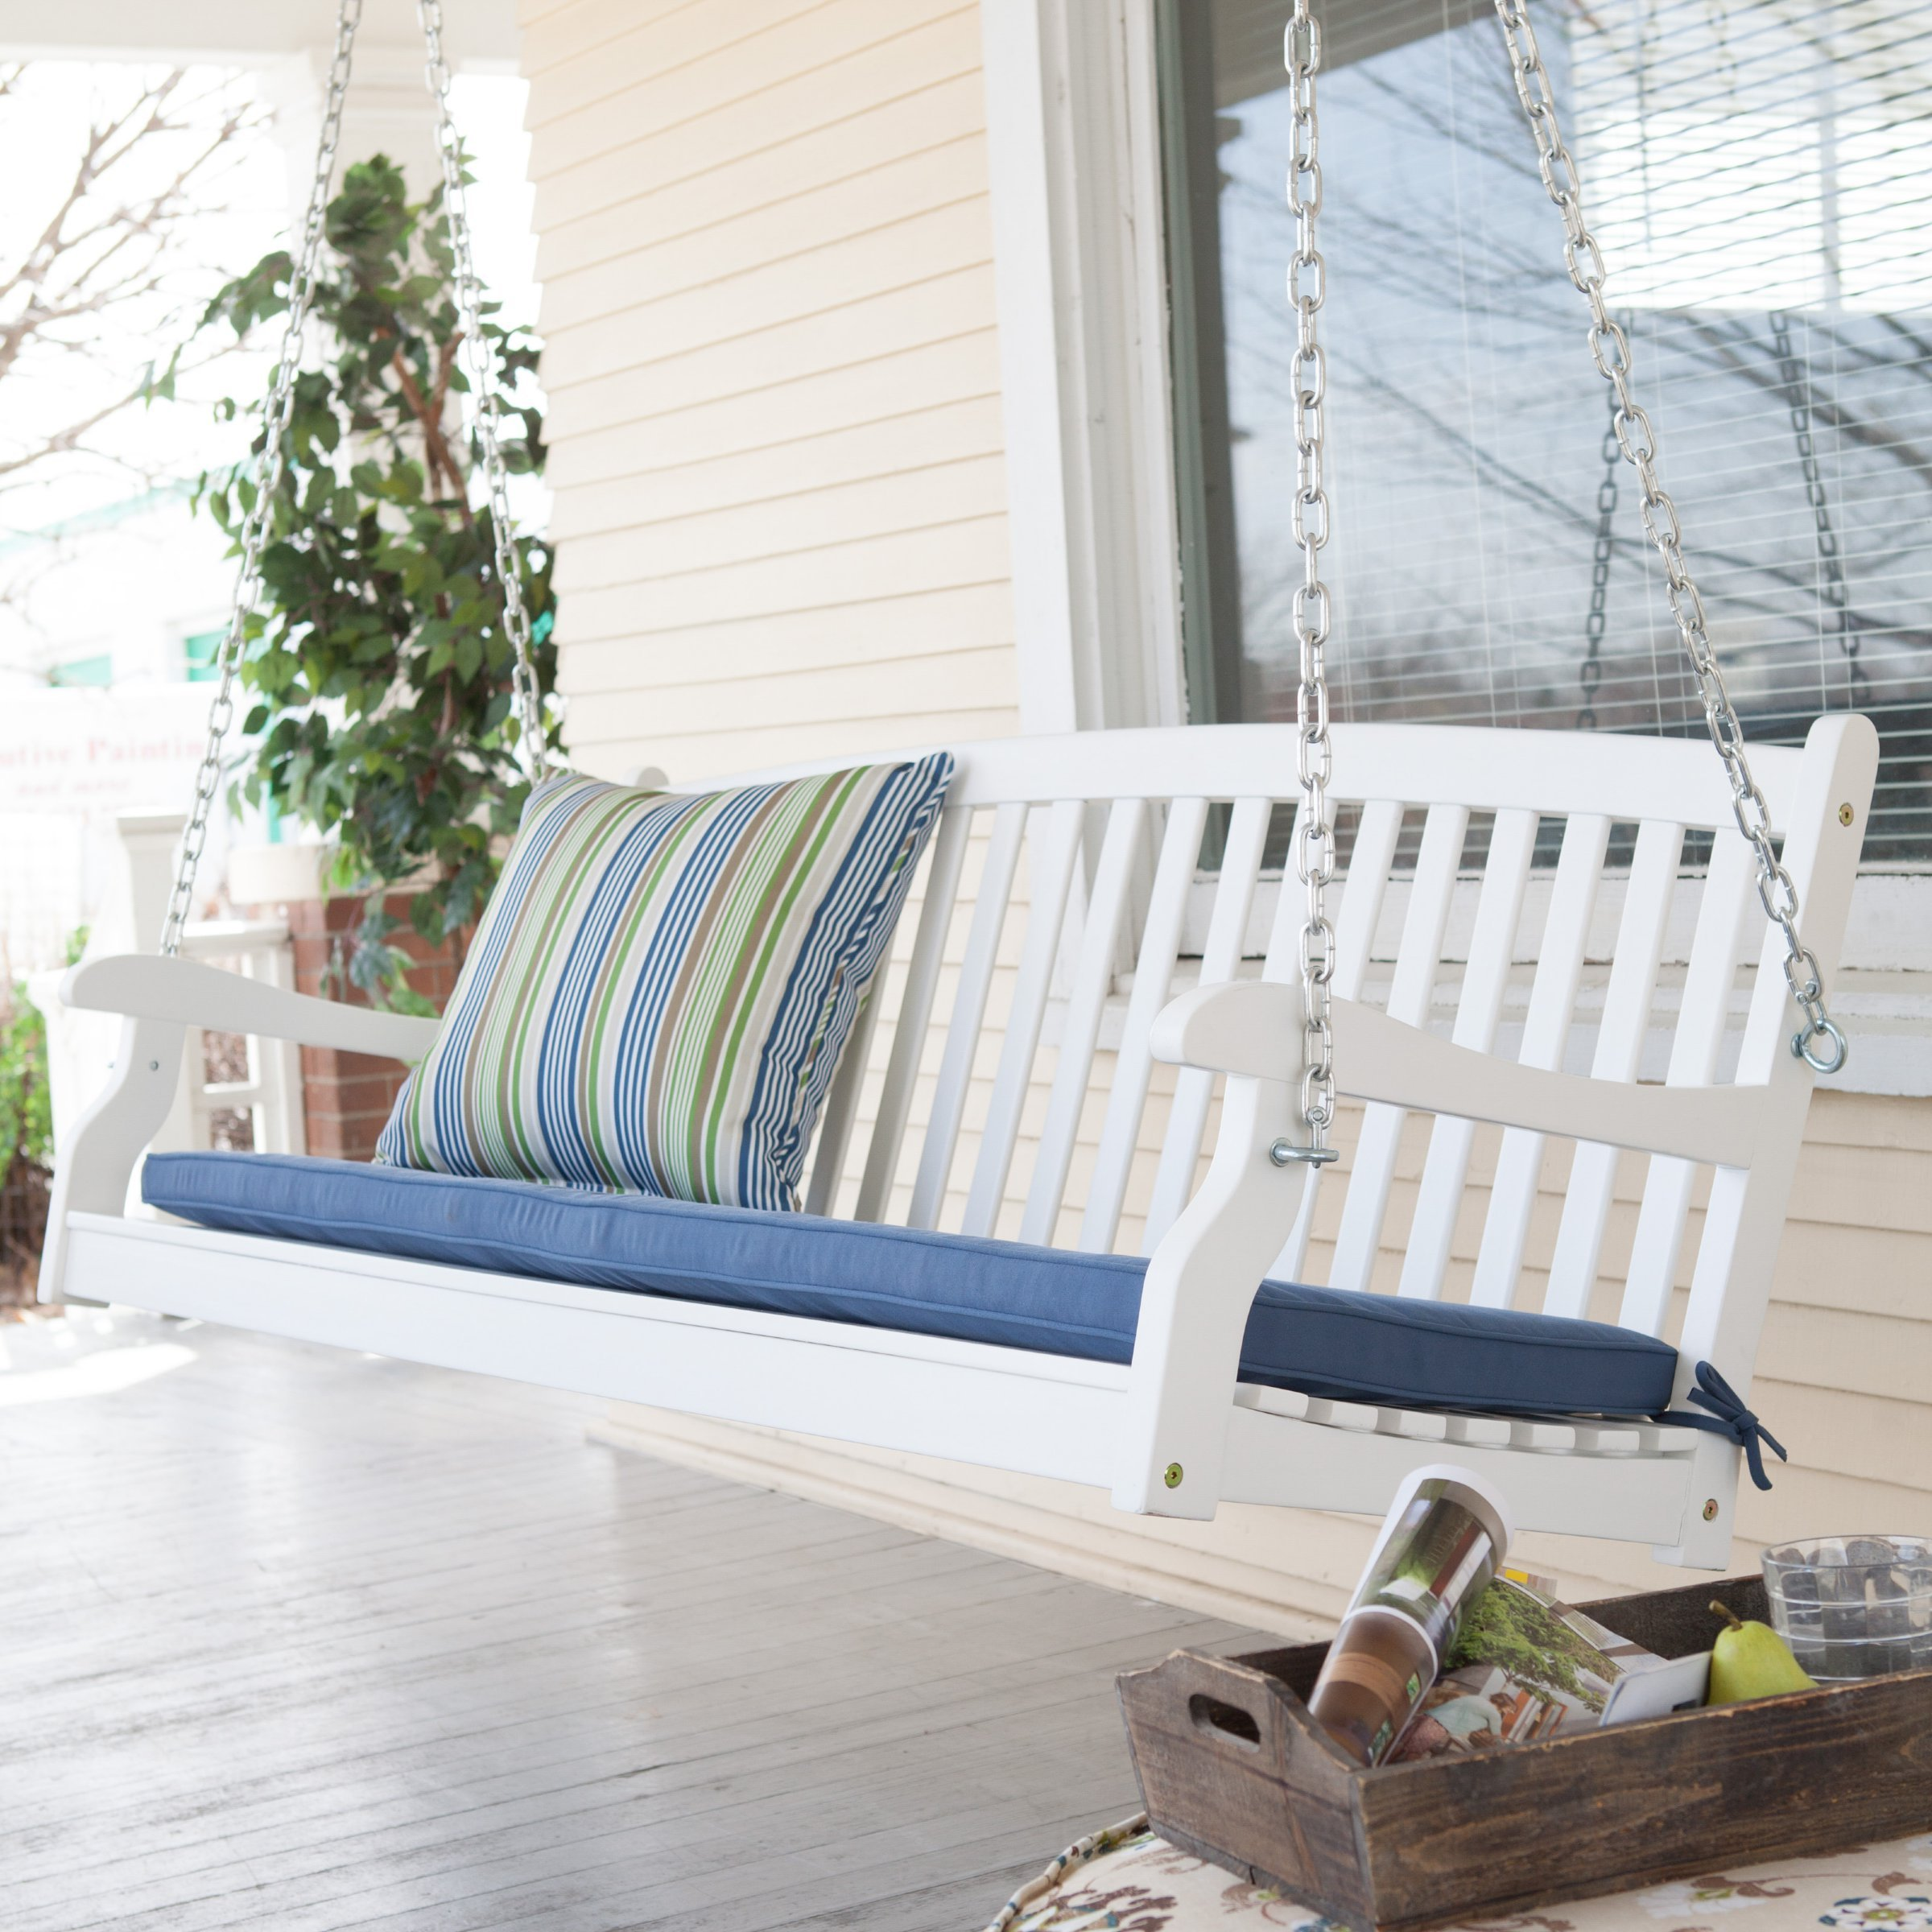 Patio Swing for Two Persons Wood Durable White Finish Coral Coast Pleasant Bay All Weather Curved Back Porch 4 Ft. Outdoor Seating by Coral Coast